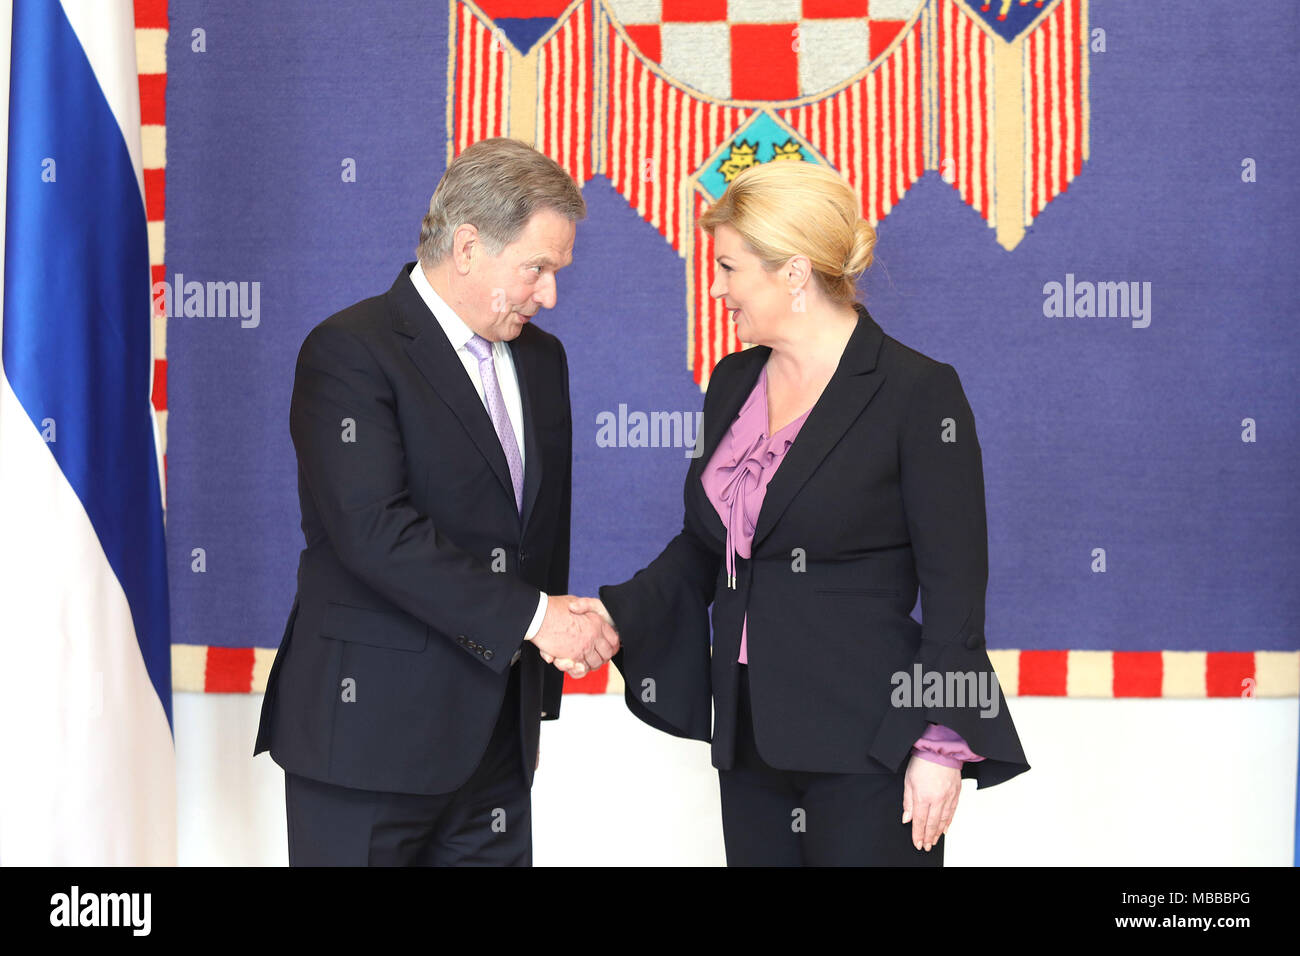 Zagreb, Croatia. 10th Apr, 2018. Visiting Finnish President Sauli Niinisto (L) shakes hands with Croatian President Kolinda Grabar-Kitarovic during a meeting at the Presidential Palace in Zagreb, capital of Croatia, on April 10, 2018. Sauli Niinisto is on a state visit to Croatia from Tuesday to Thursday. Credit: Patrik Macek/Xinhua/Alamy Live News - Stock Image